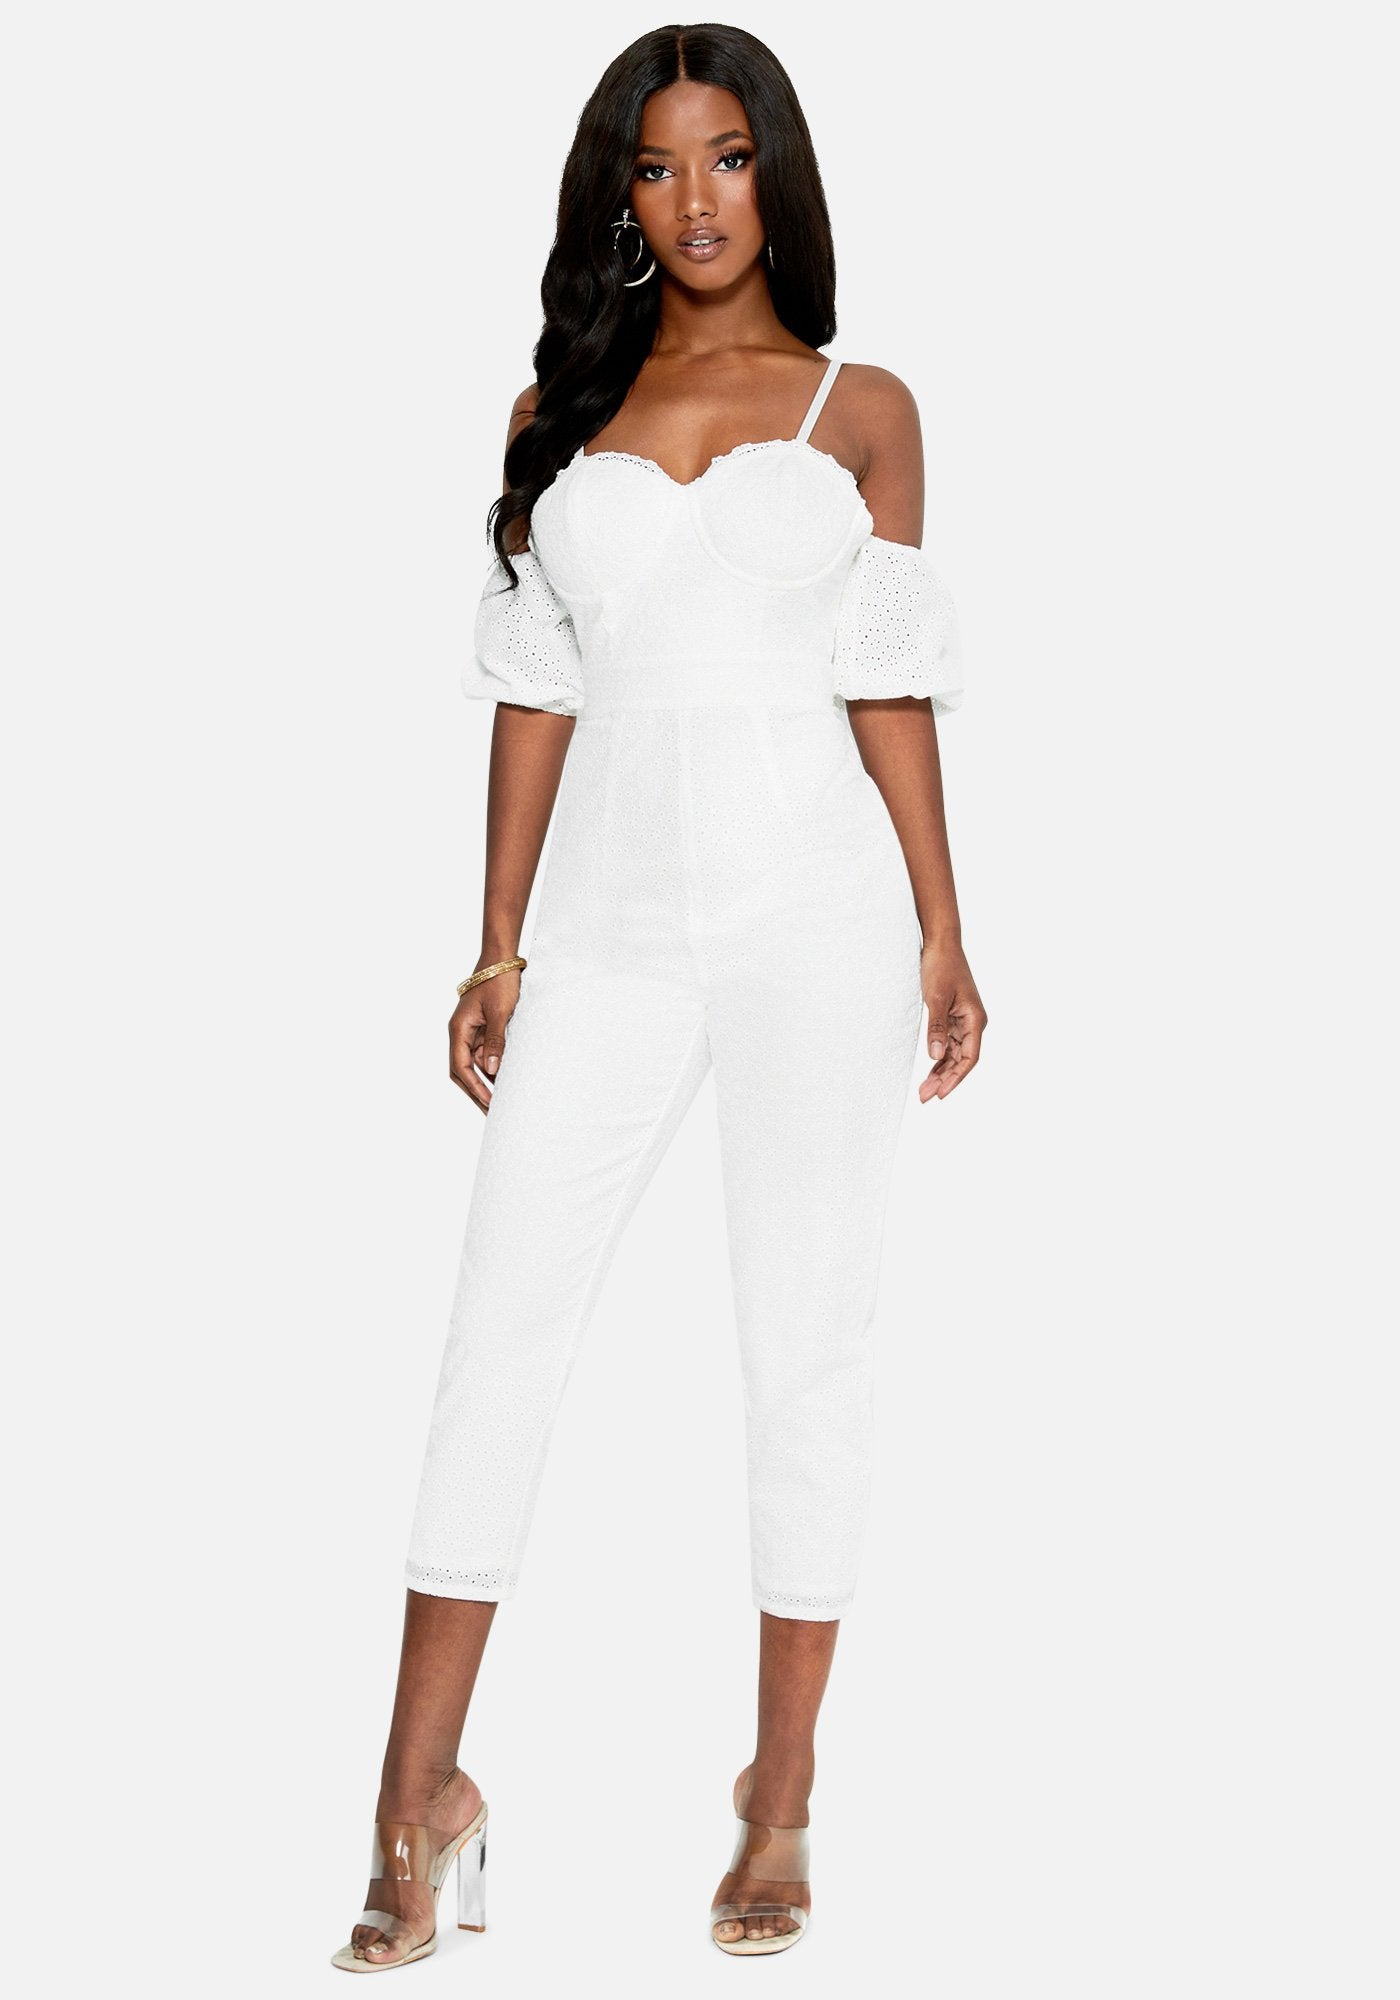 Bebe Women's Bustier Eyelet Jumpsuit, Size 00 in BRIGHT WHITE Cotton